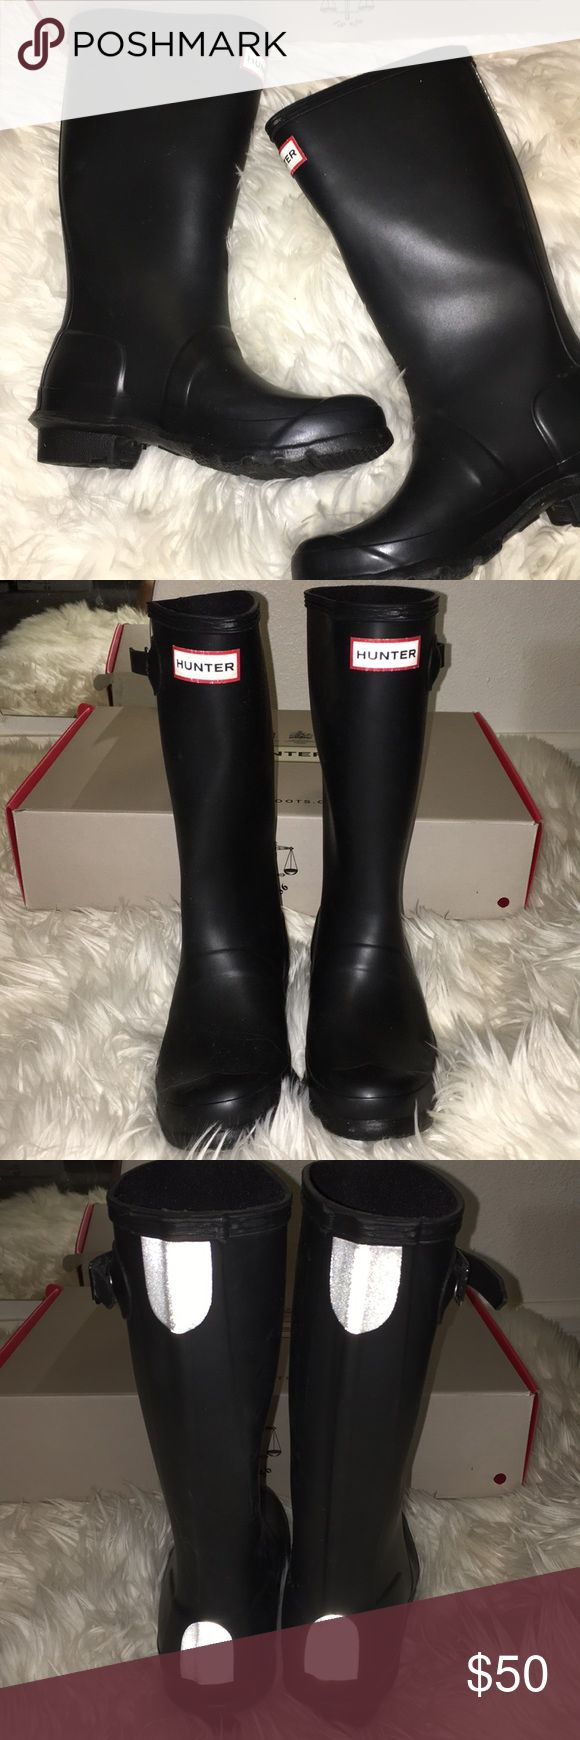 AUTHENTIC Hunter boots Kids Hunter rain boots size 3 in kids (5 women) black. Comes with original box. Worn ONCE Hunter Shoes Rain & Snow Boots